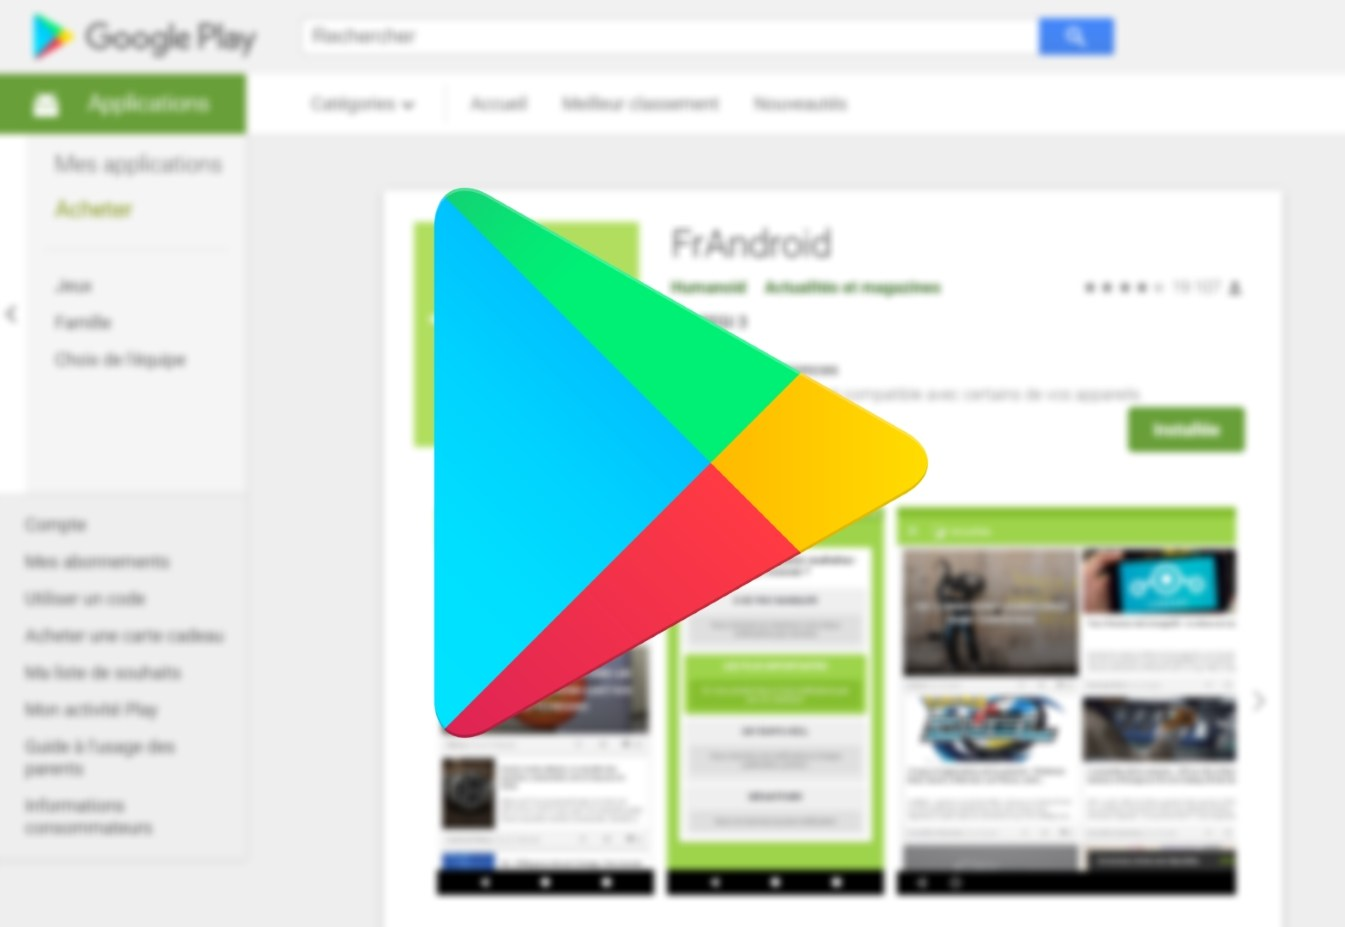 Play Store : Google teste une nouvelle interface de présentation des applications